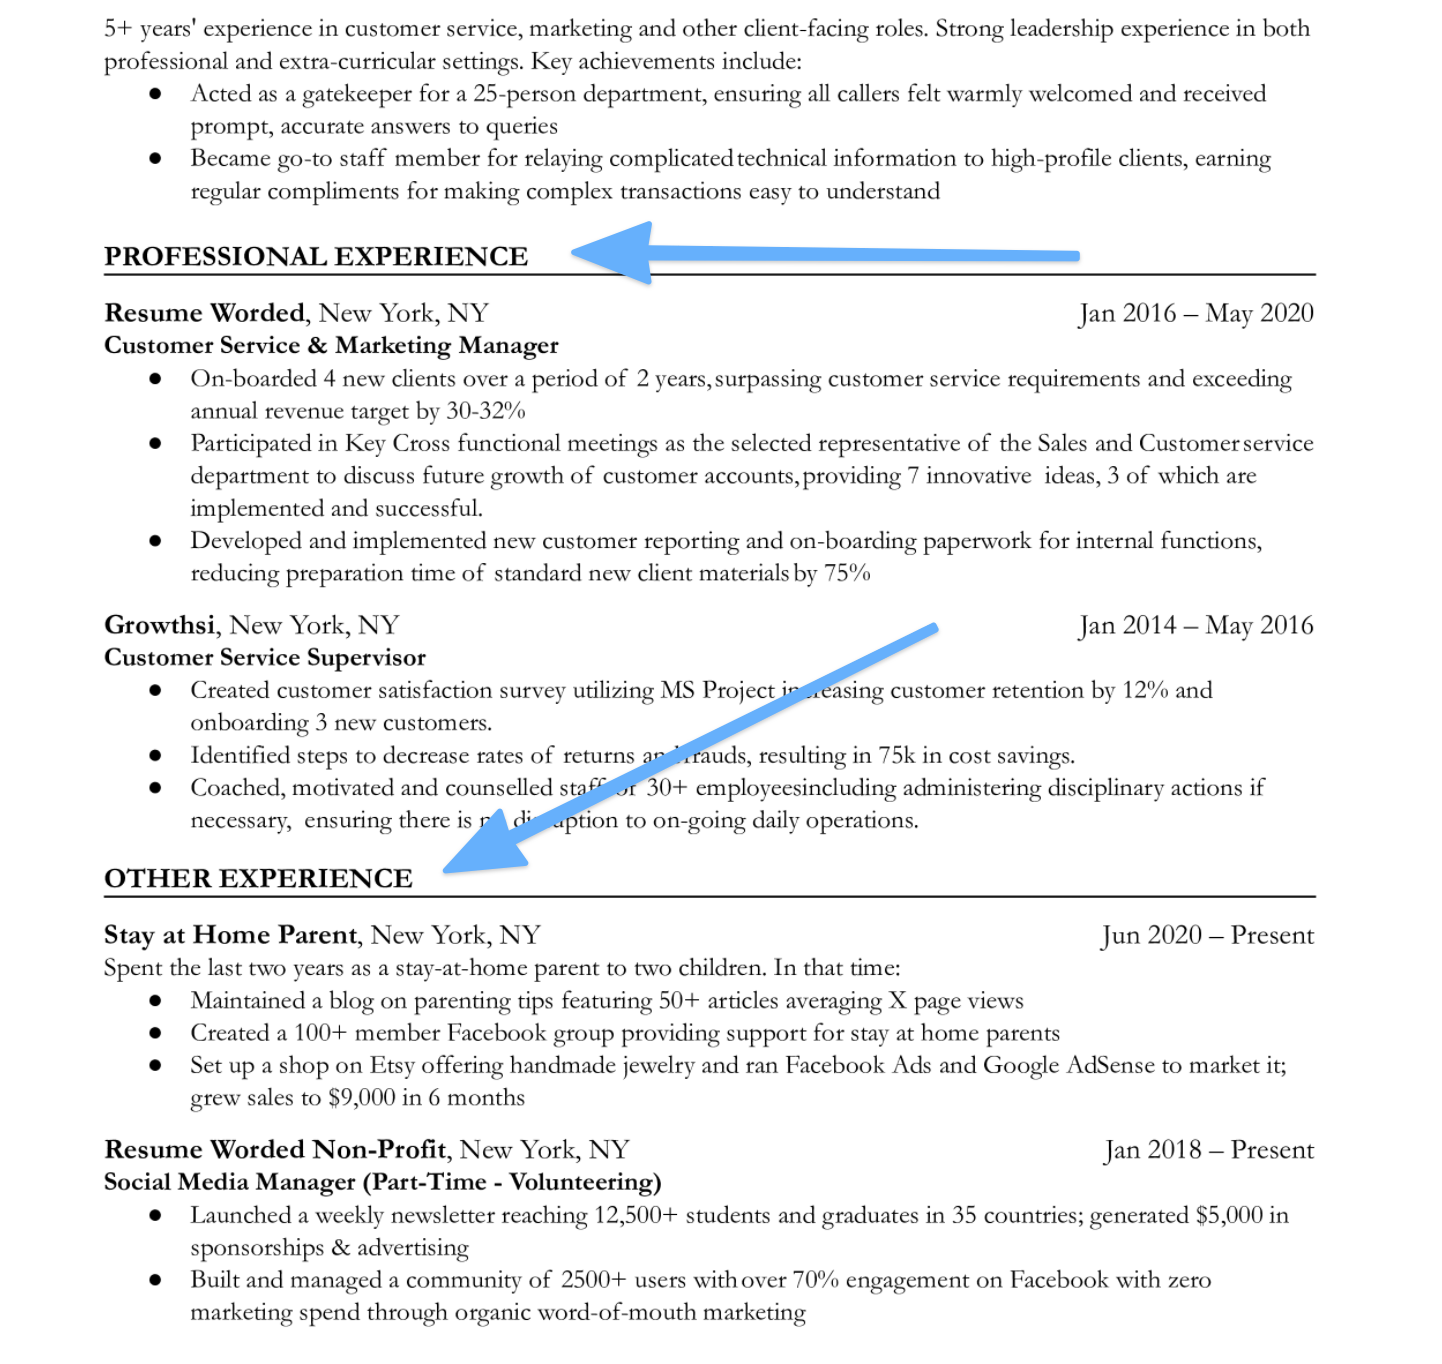 An resume with multiple experience section headings